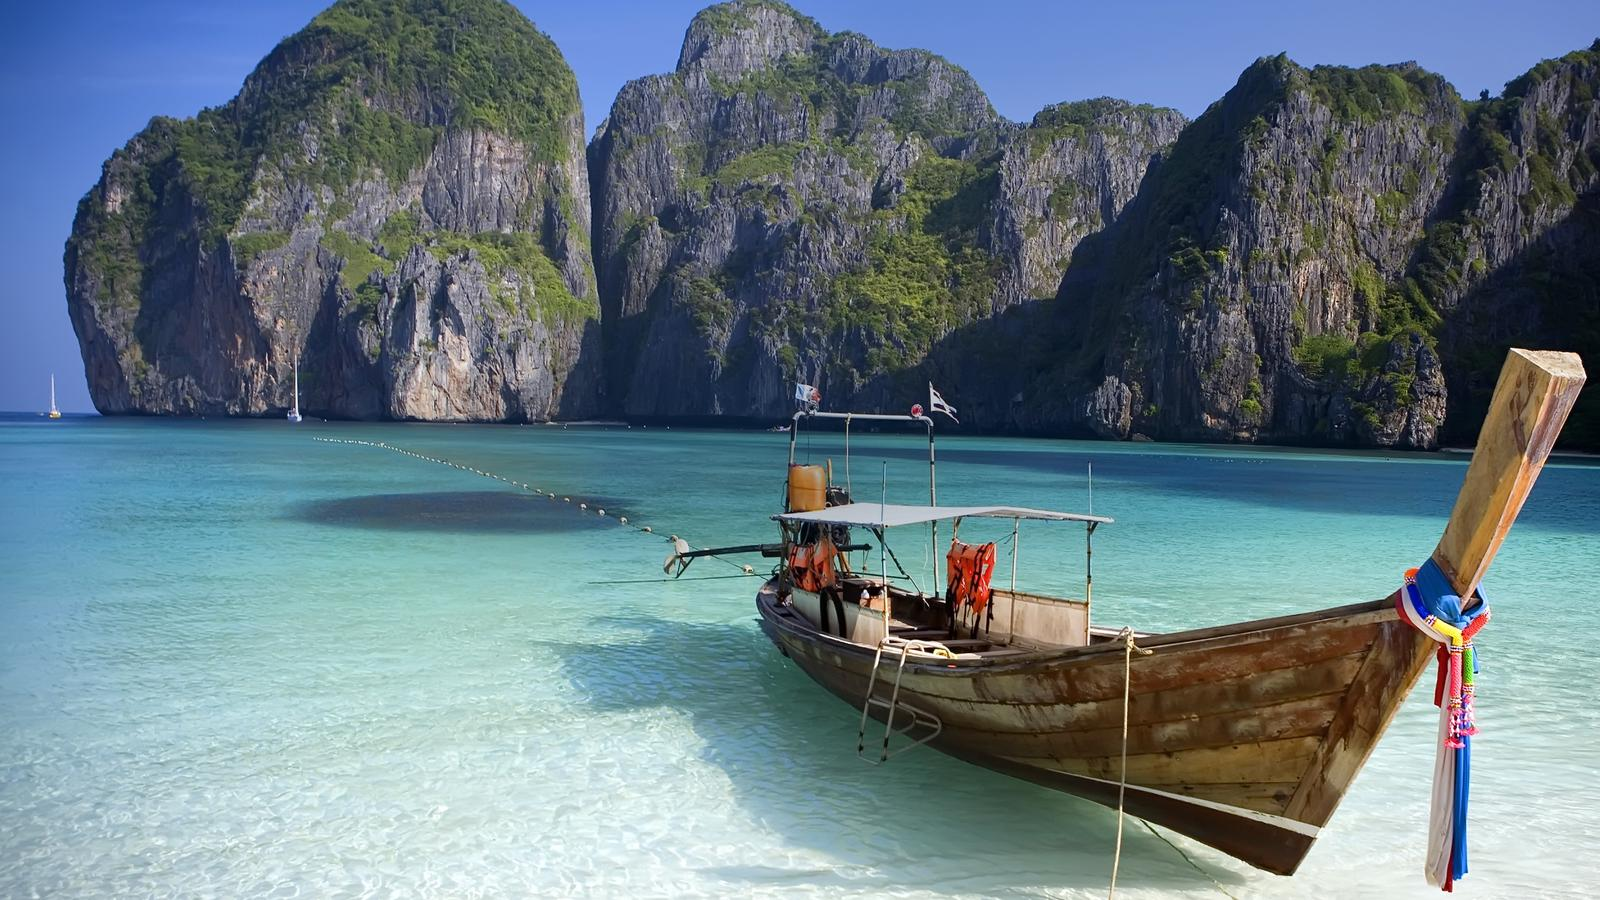 Koh Phi Phi,things to do in Thailand